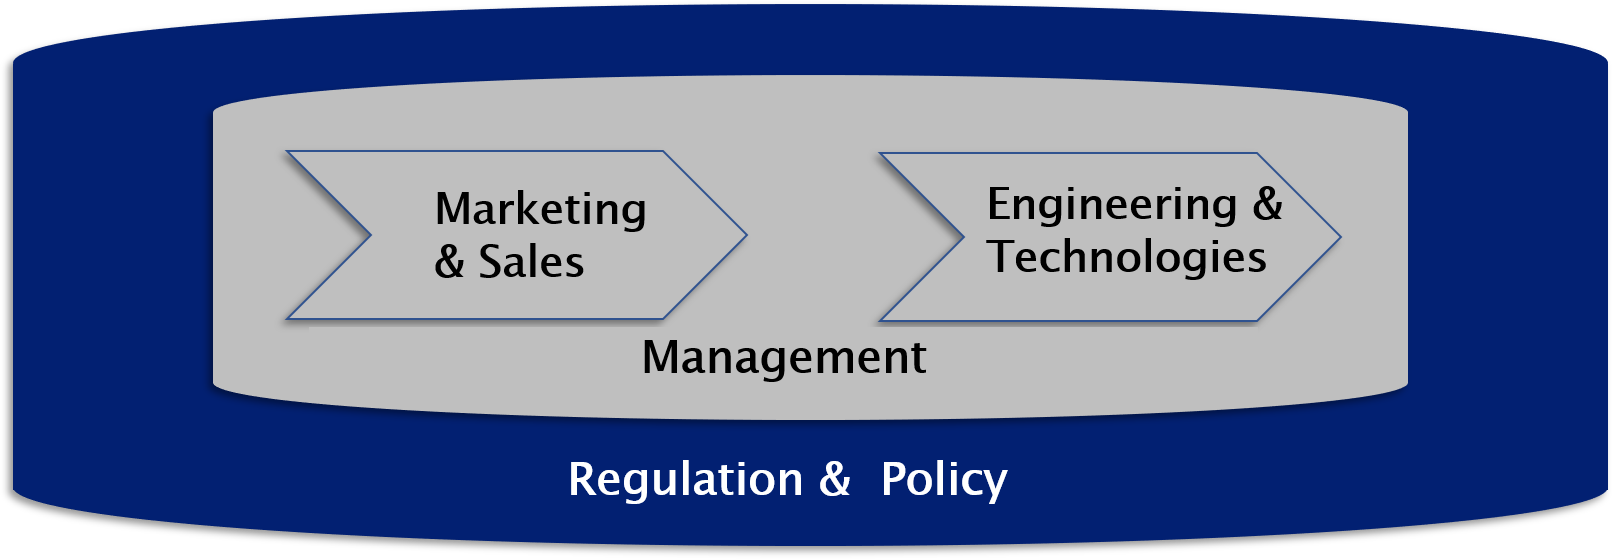 corporate training regulation graph